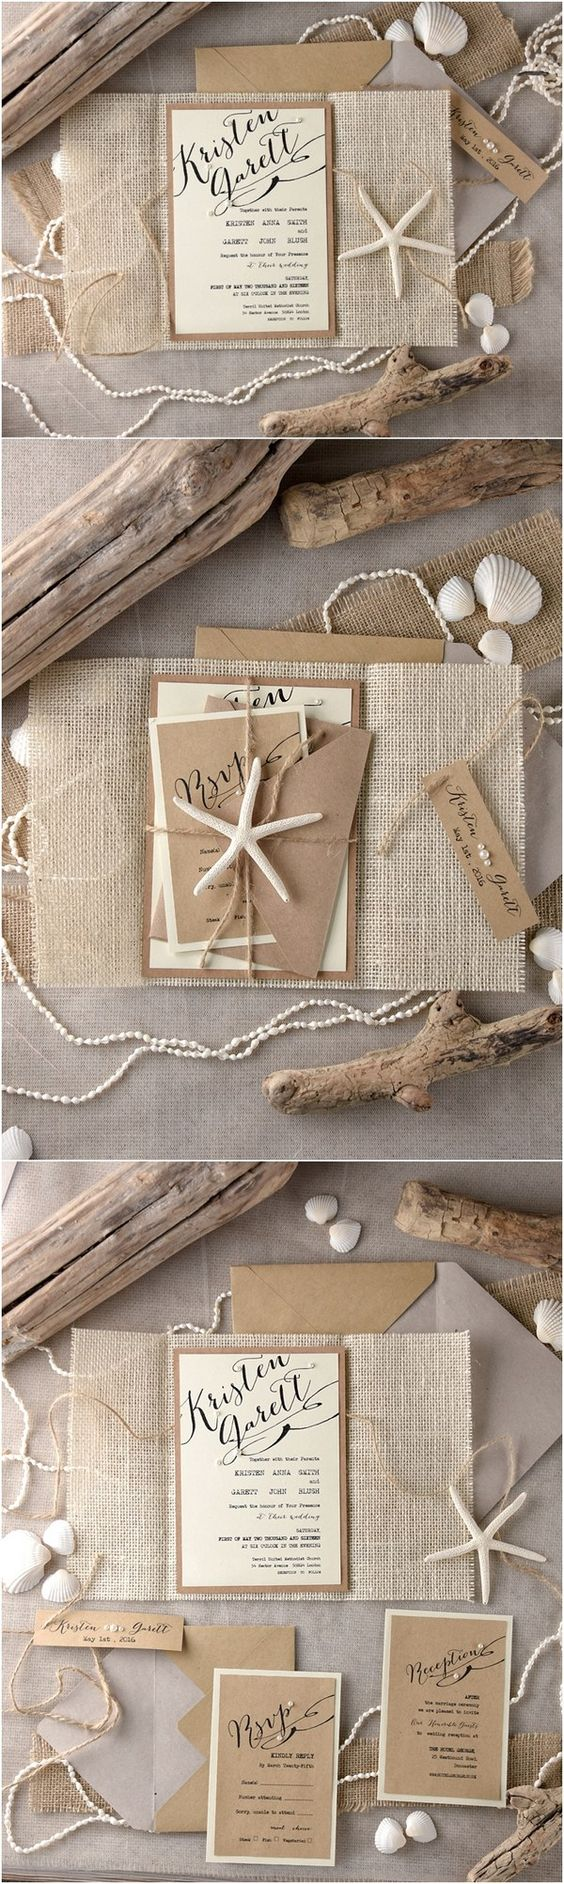 Rustic country burlap beach wedding invitations @4LOVEPolkaDots